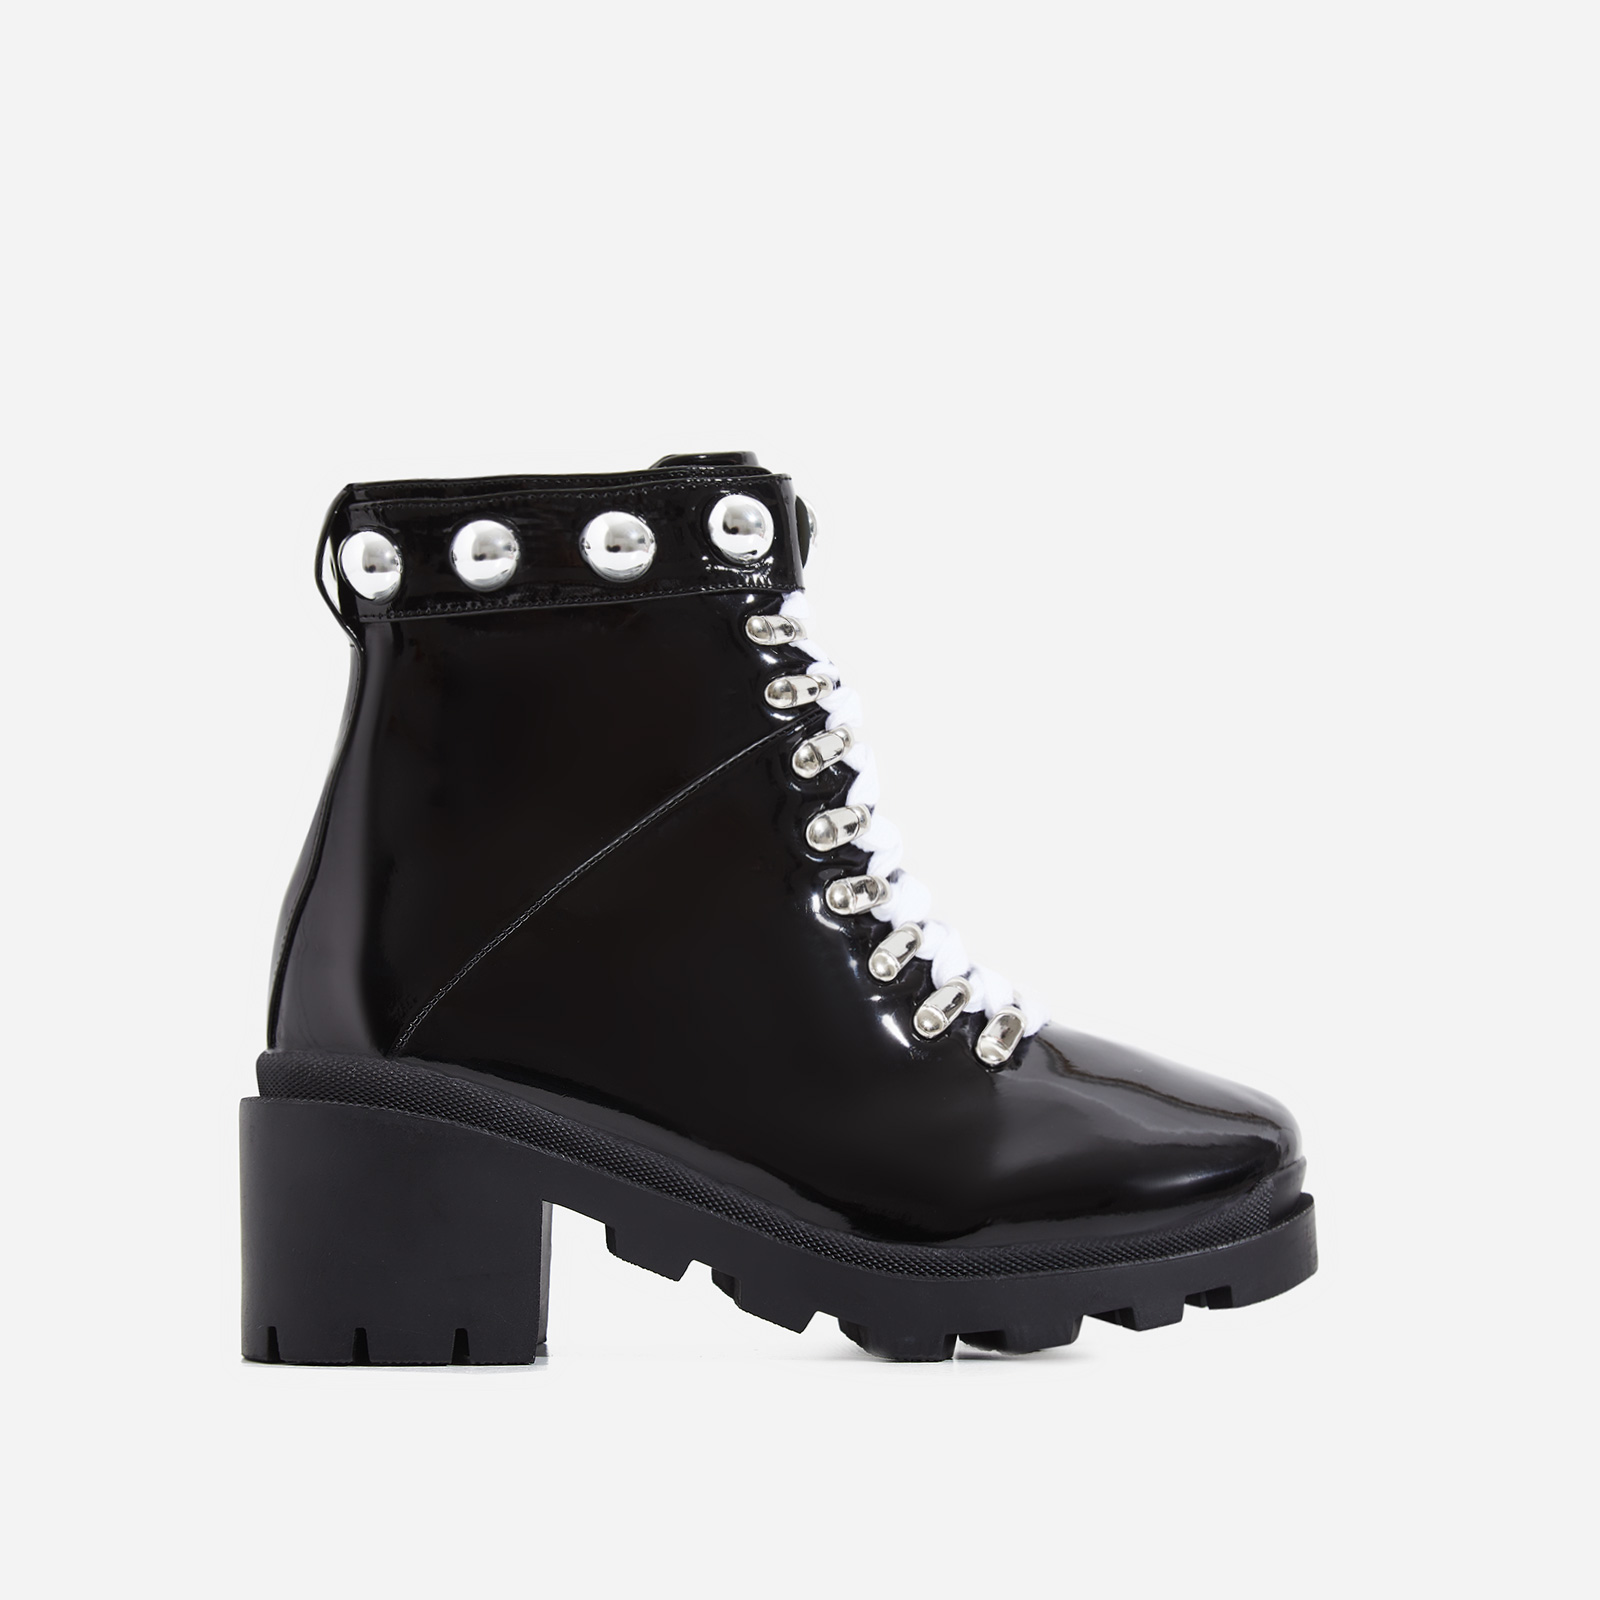 Winky Studded Chunky Sole Lace Up Ankle Biker Boot In Black Patent